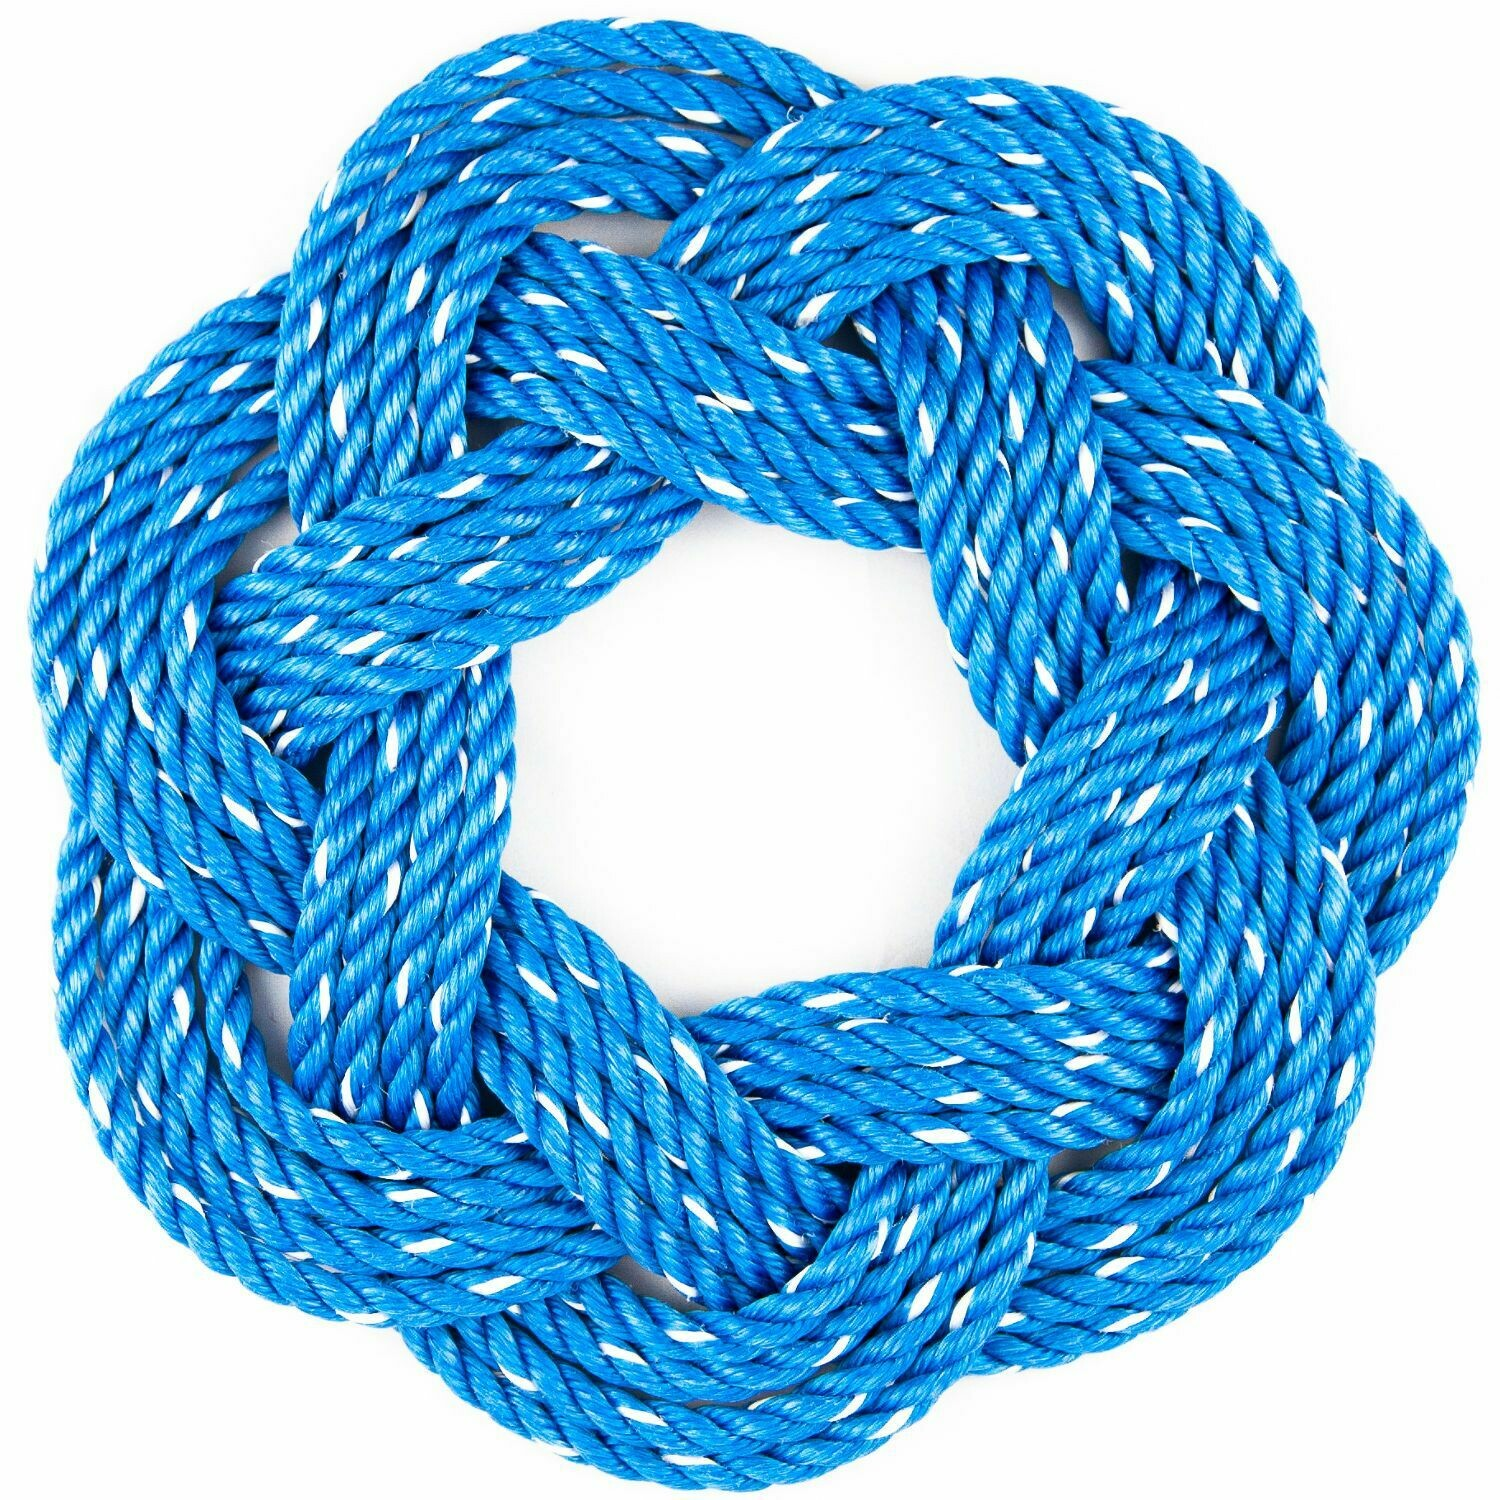 "Lobster Rope Wreath 13"", Blue - All for Knot"